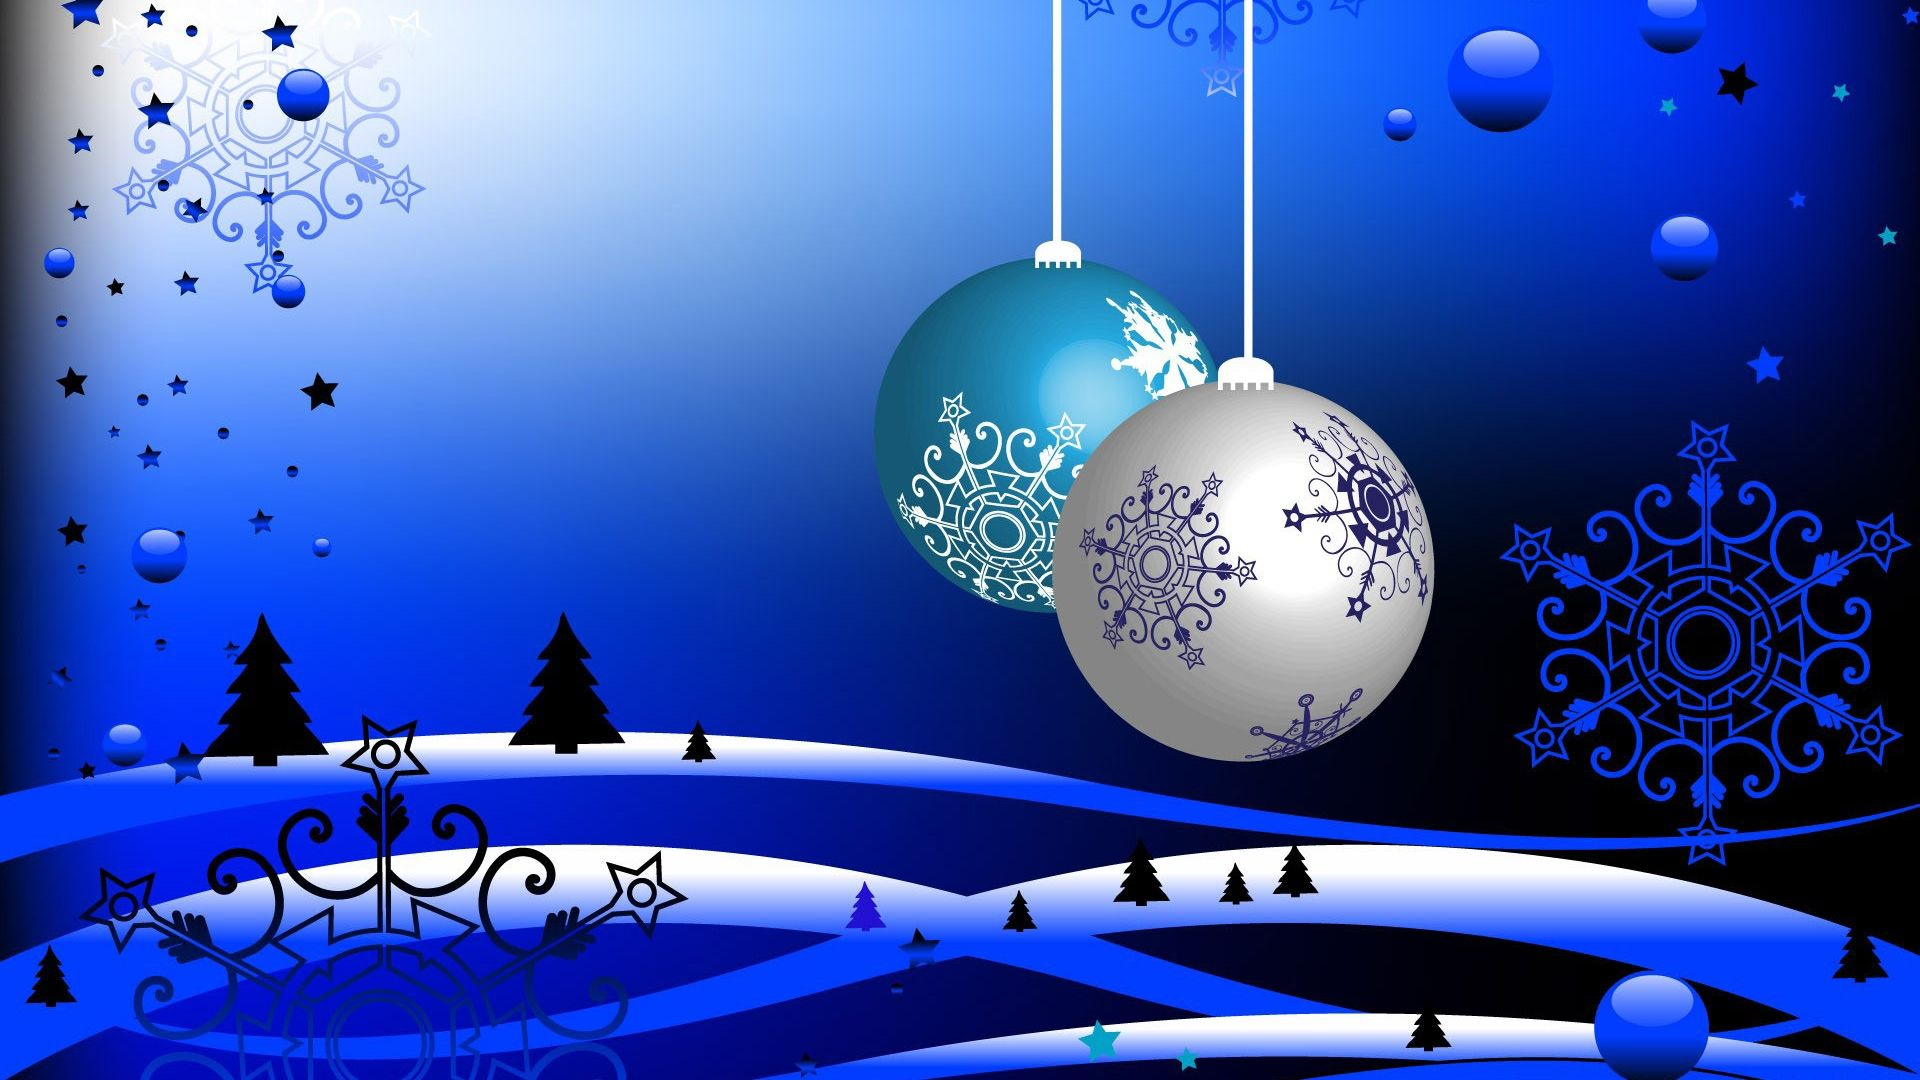 40 Free Animated Christmas Wallpaper for Desktop | Christmas ...